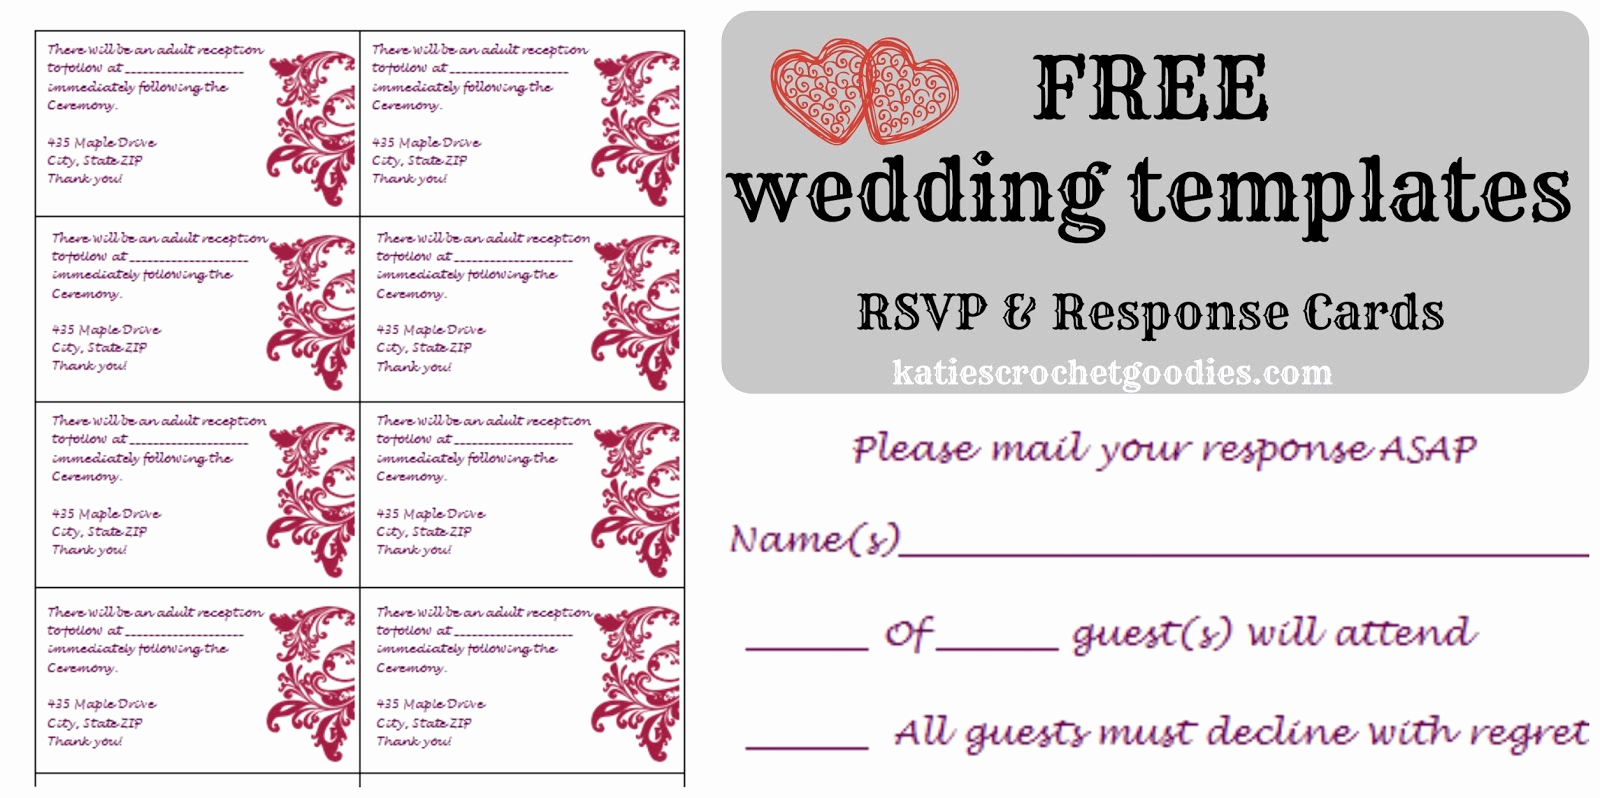 Free Printable Postcard Templates New Free Wedding Templates Rsvp & Reception Cards Katie S